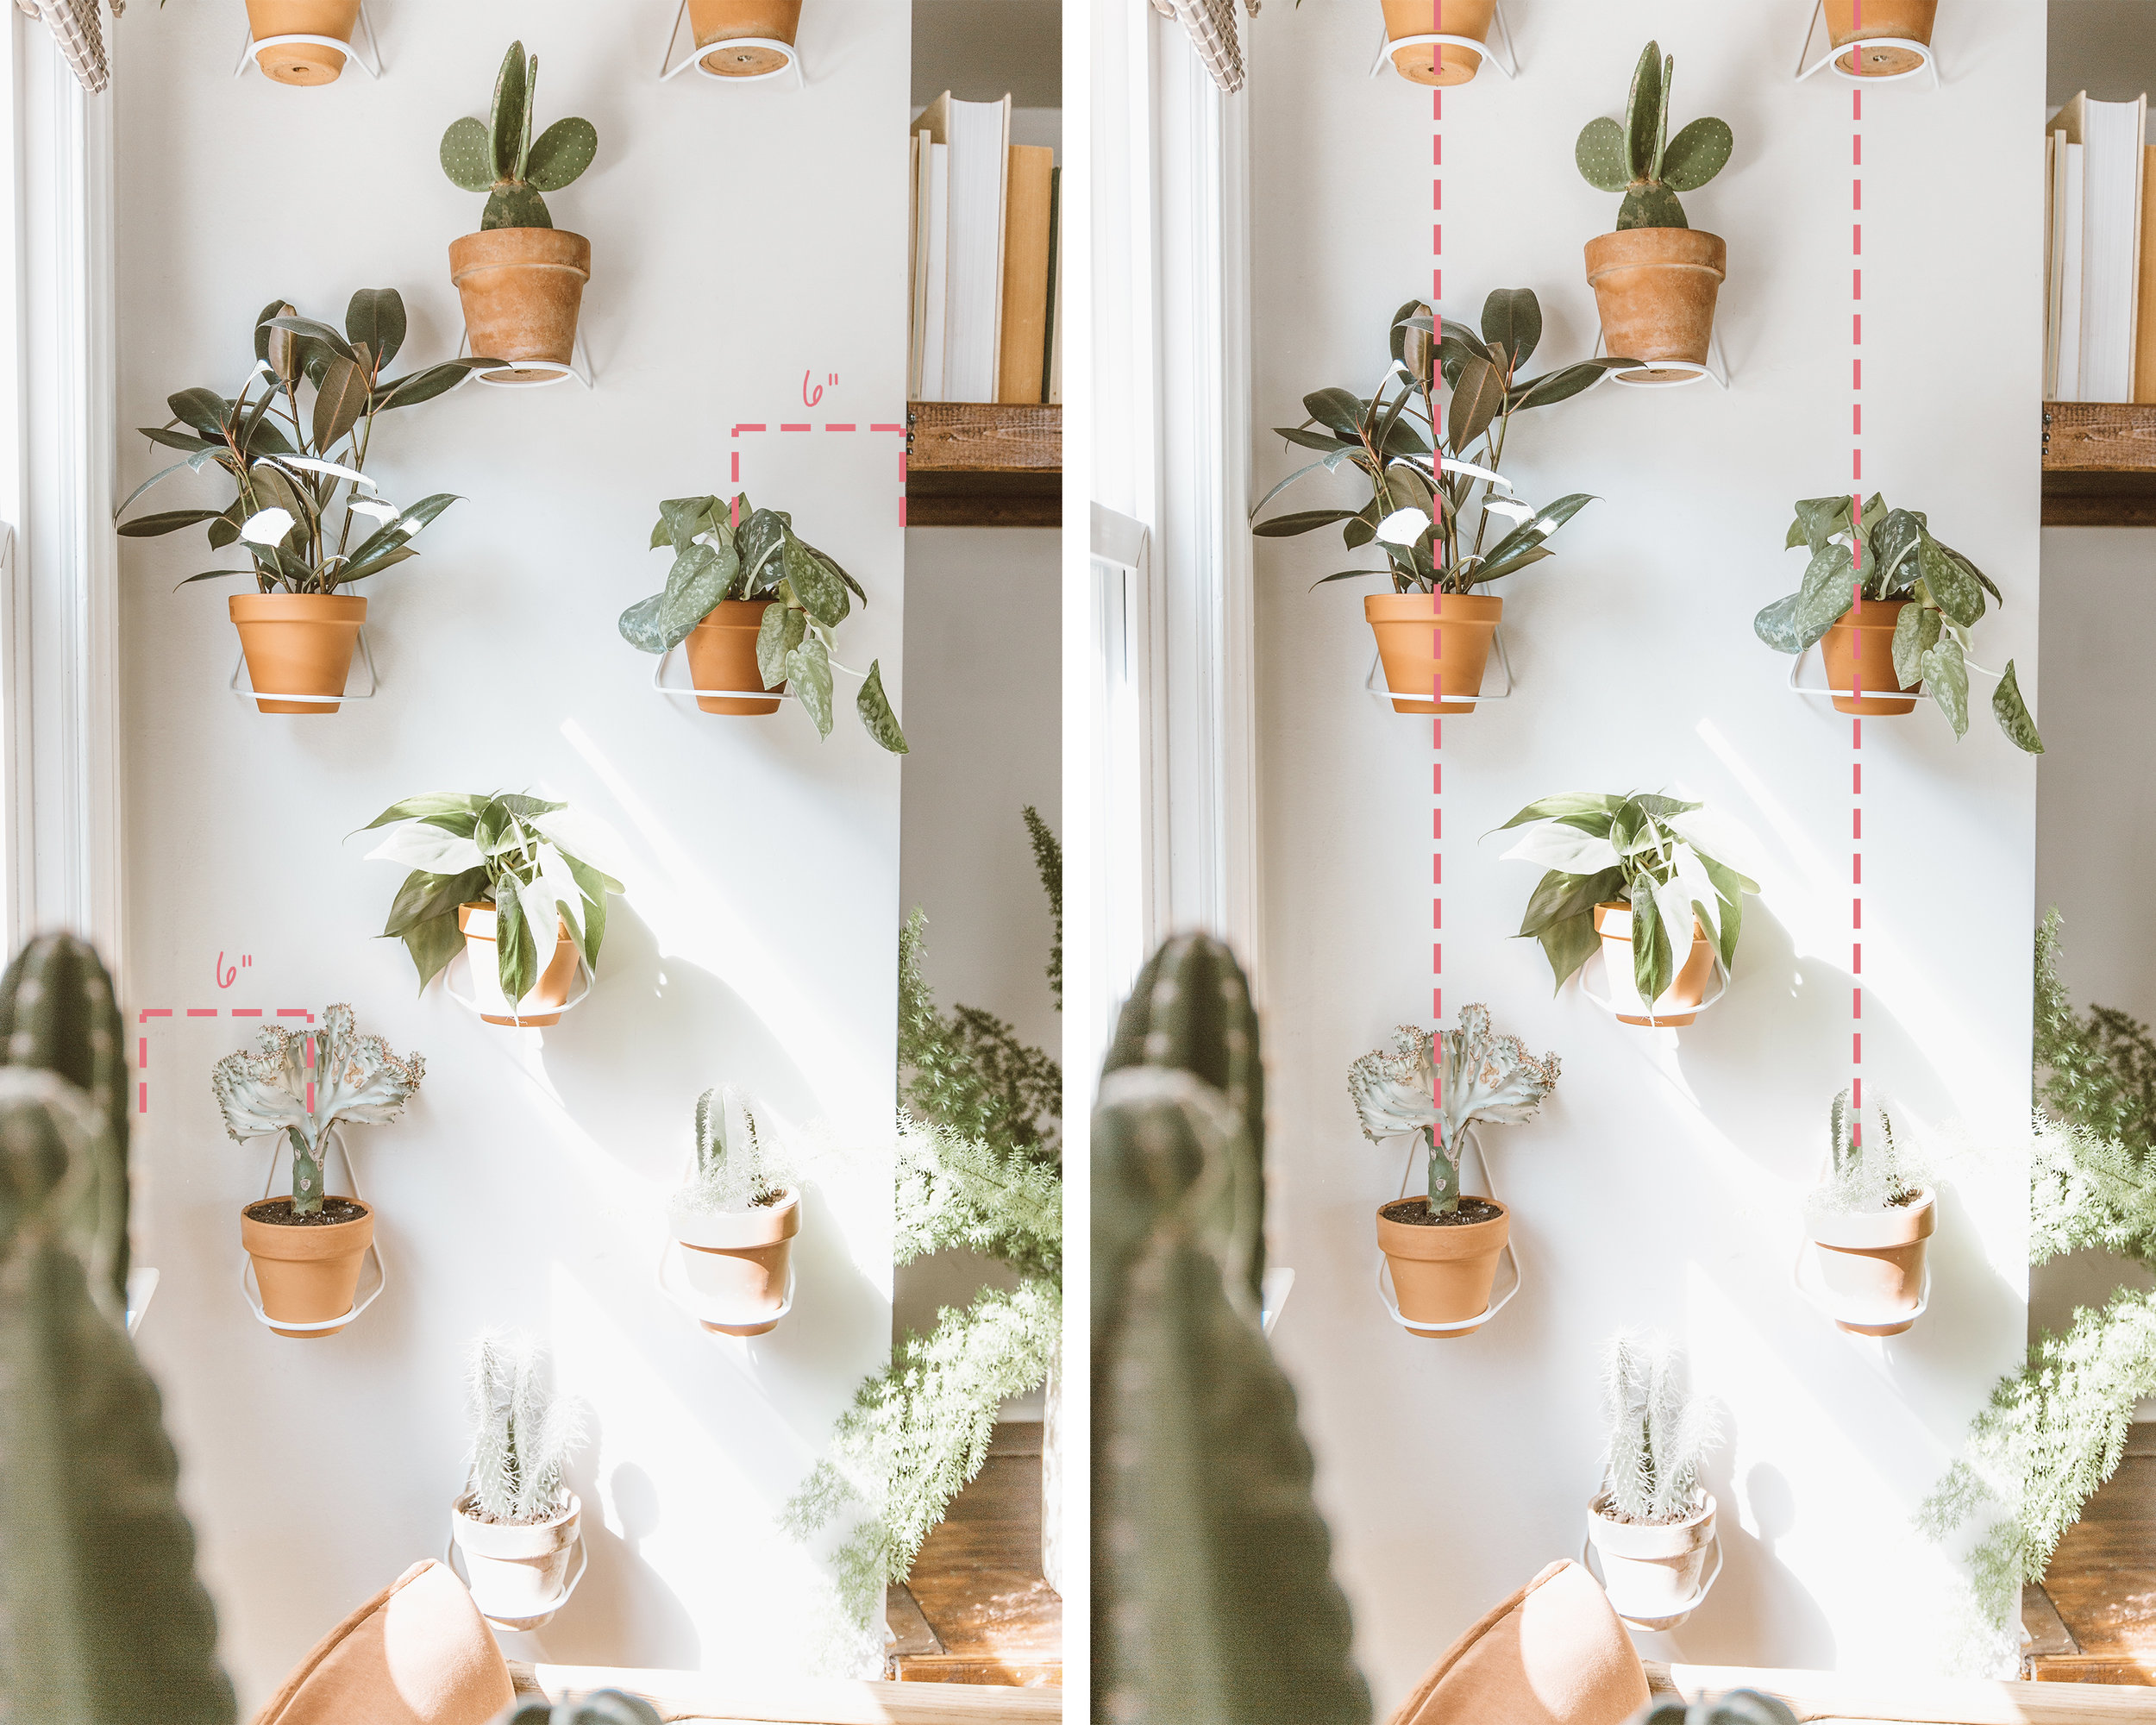 _forthehome-how-to-living-wall-step1.jpg